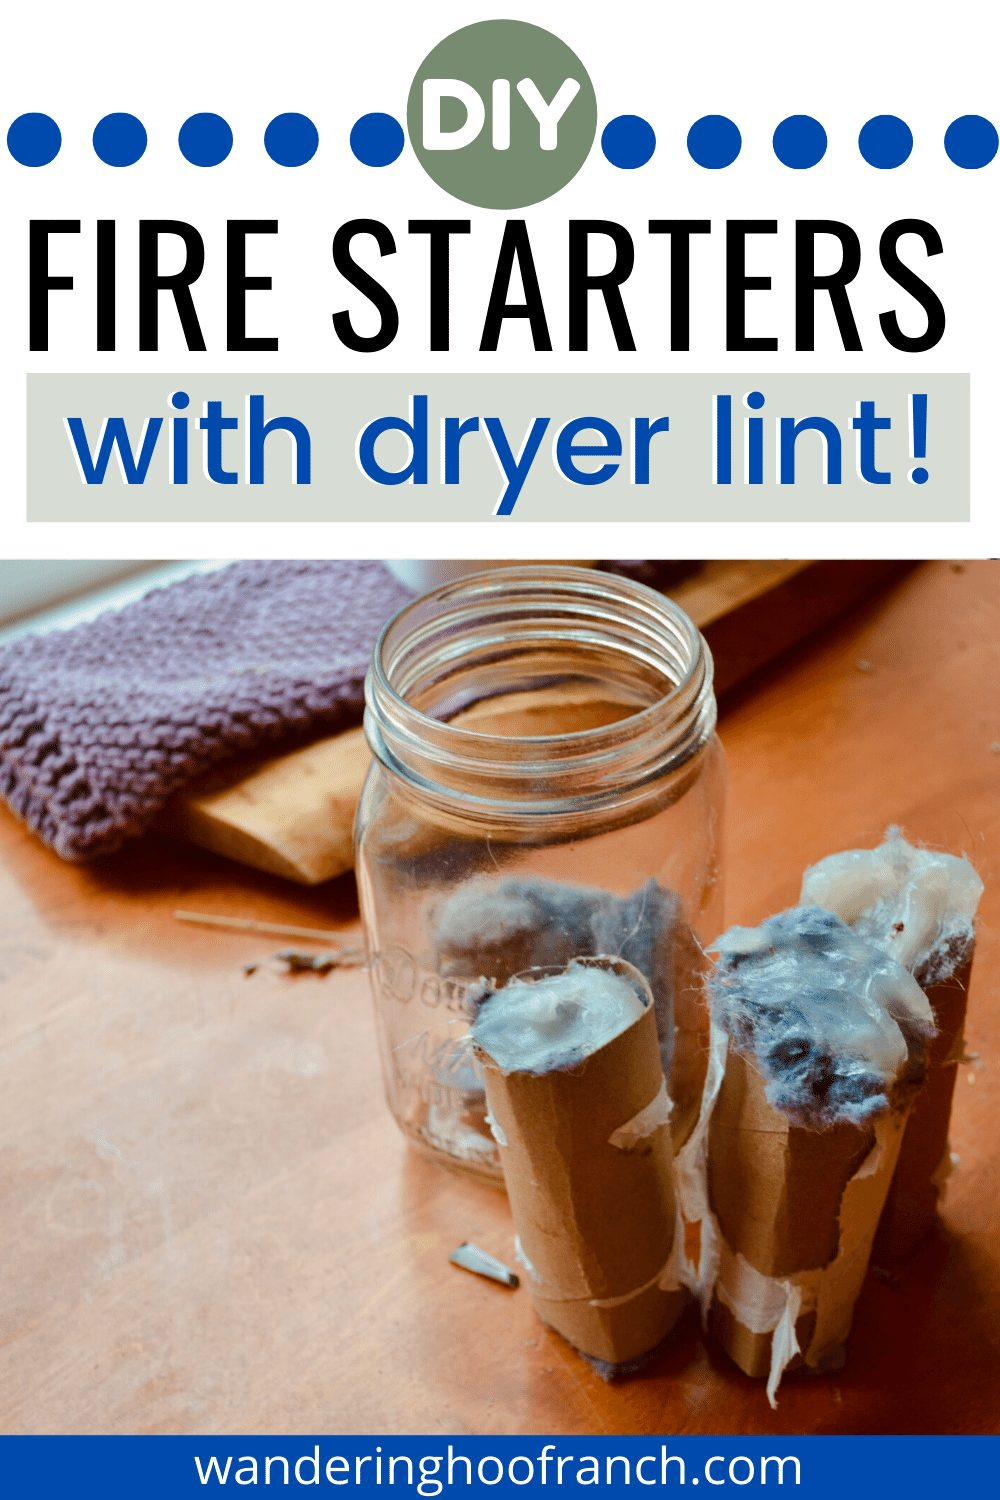 diy fire starters, filling toliet paper rolls and dryer lint and petroleum jelly